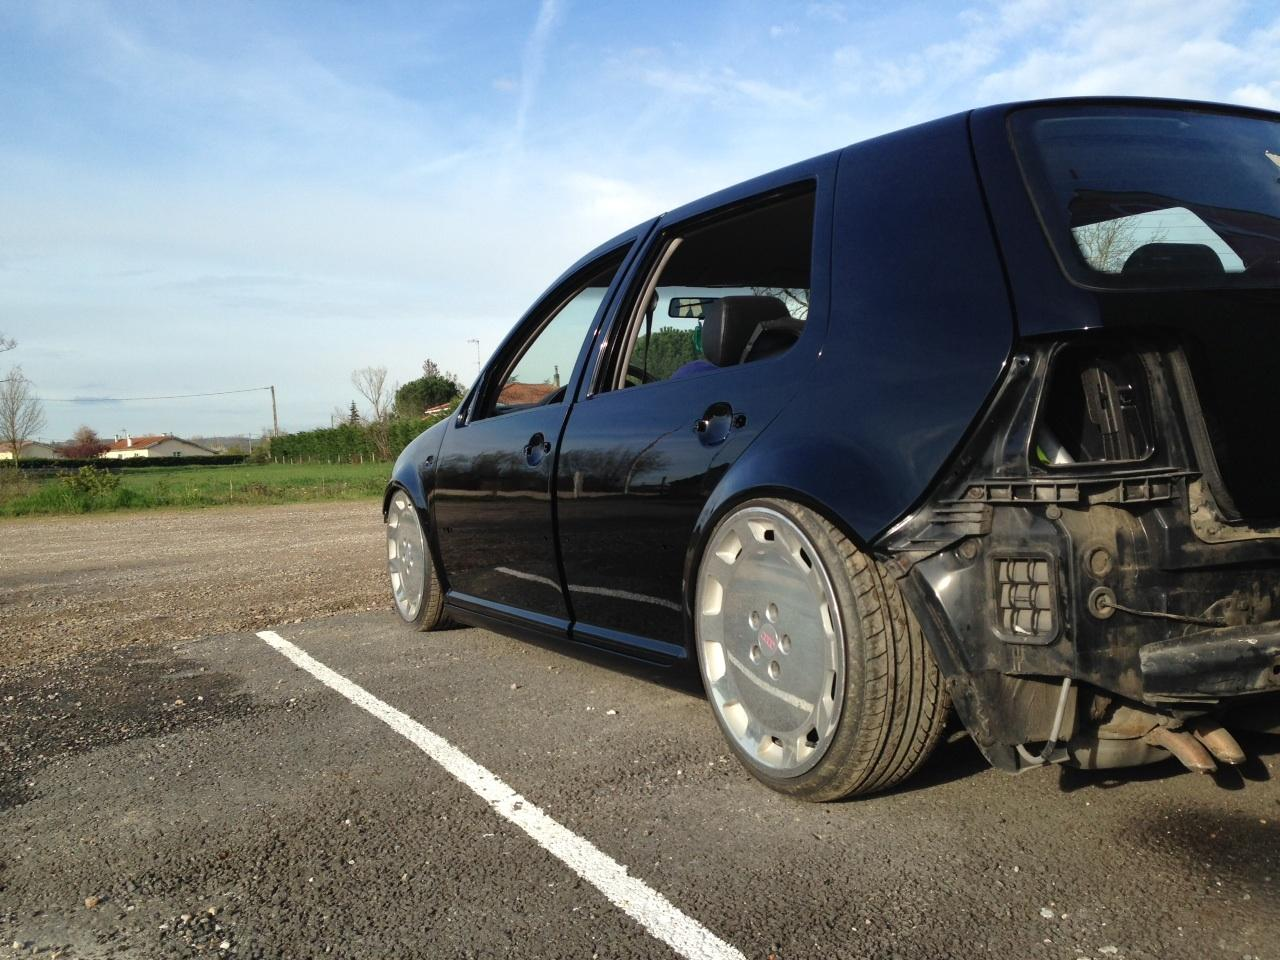 Garage Vw Toulouse Vw Golf Iv 1 6sr Basis 2000 Swap 1 8t Garage Des Golf